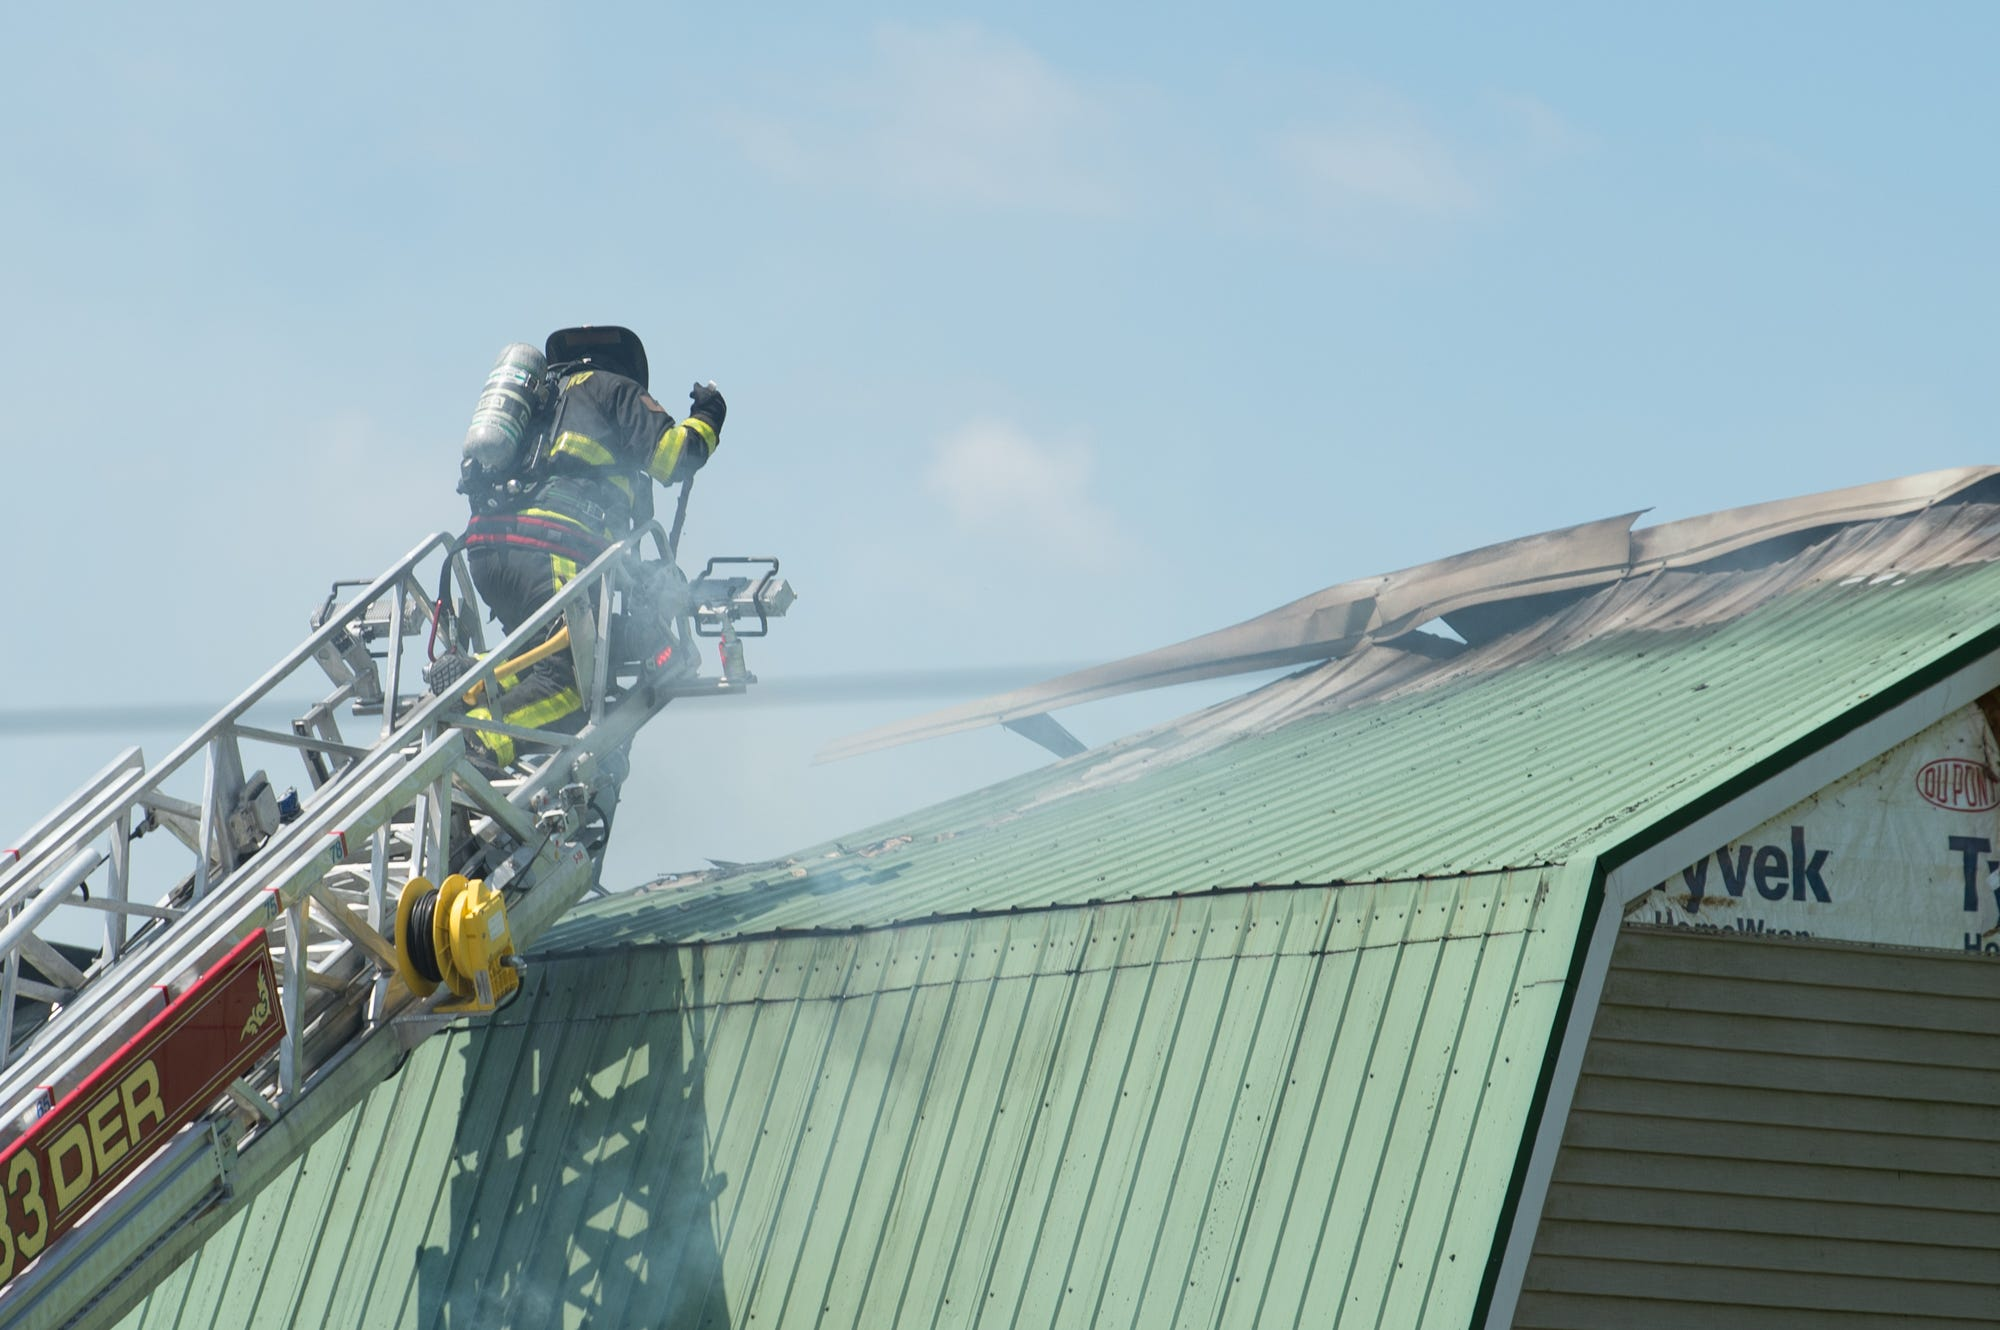 http://www.delawareonline.com/picture-gallery/news/local/2014/08/22 ...